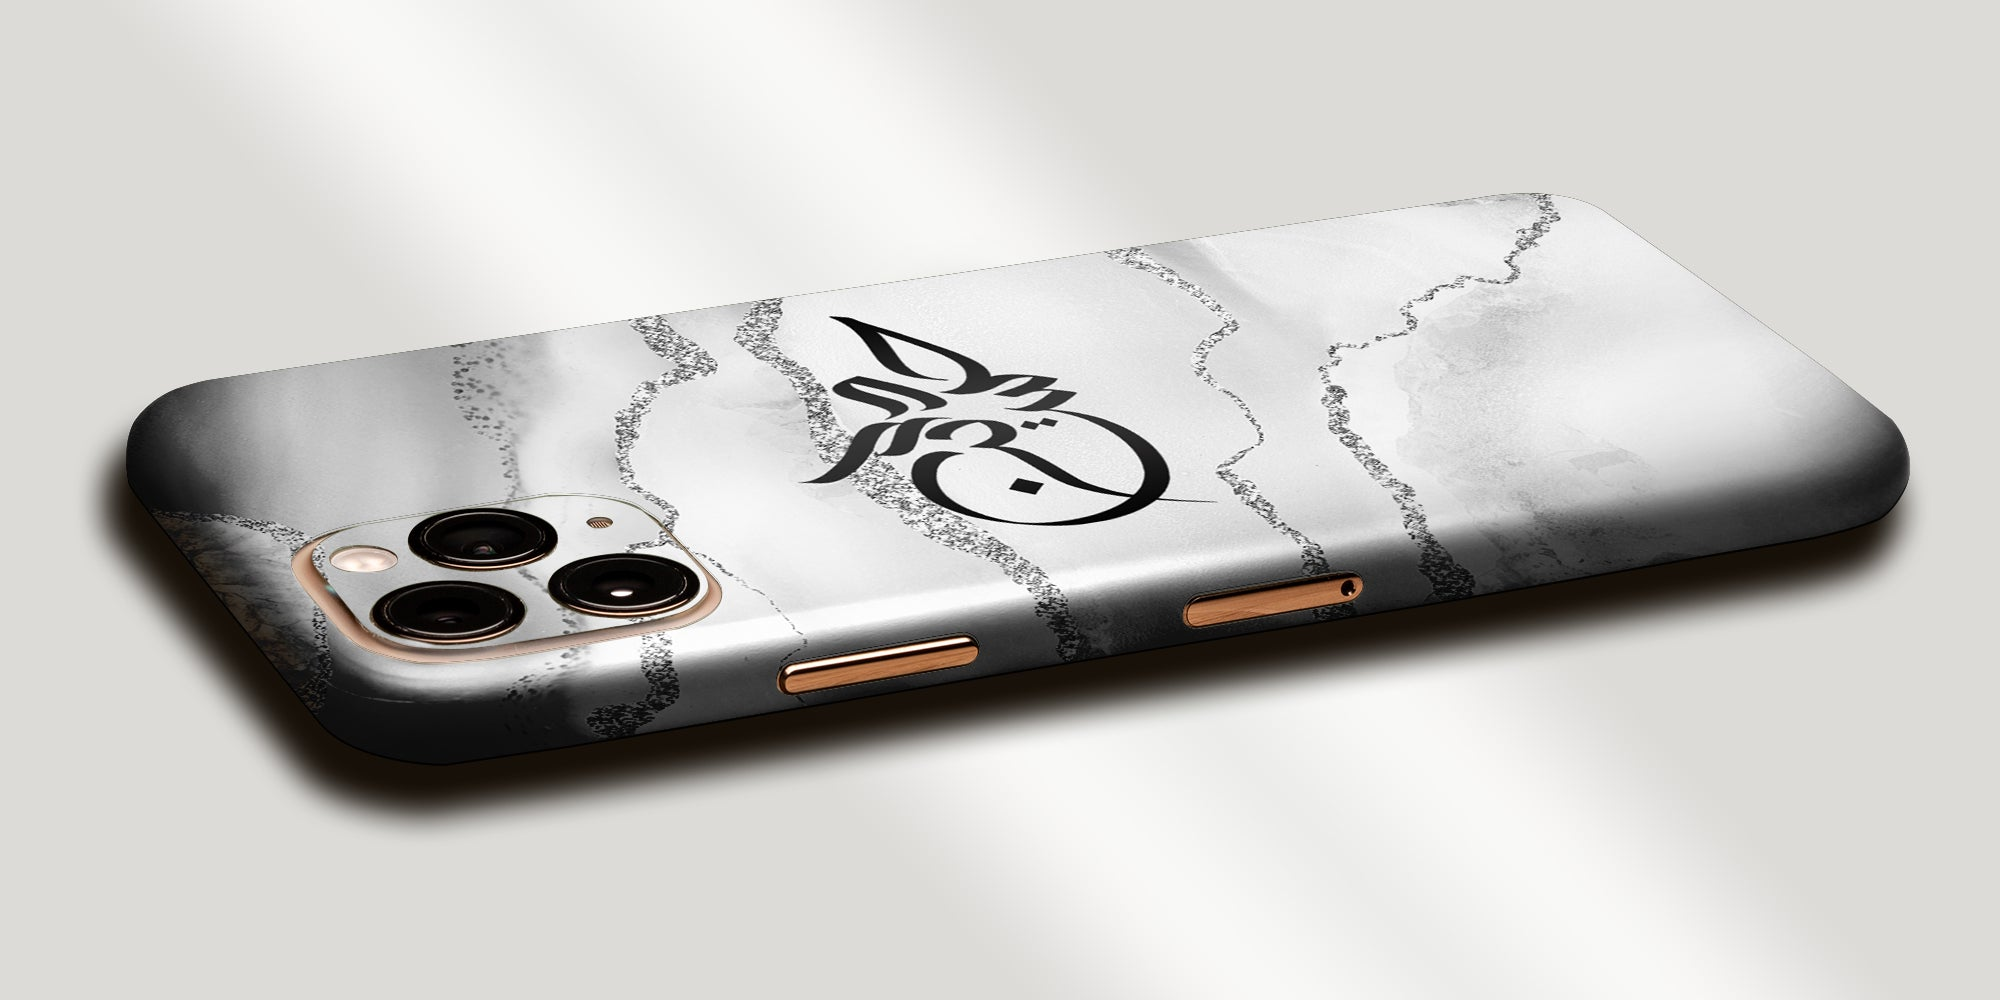 Agate Design Decal Skin With Personalised Arabic Name Phone Wrap - White